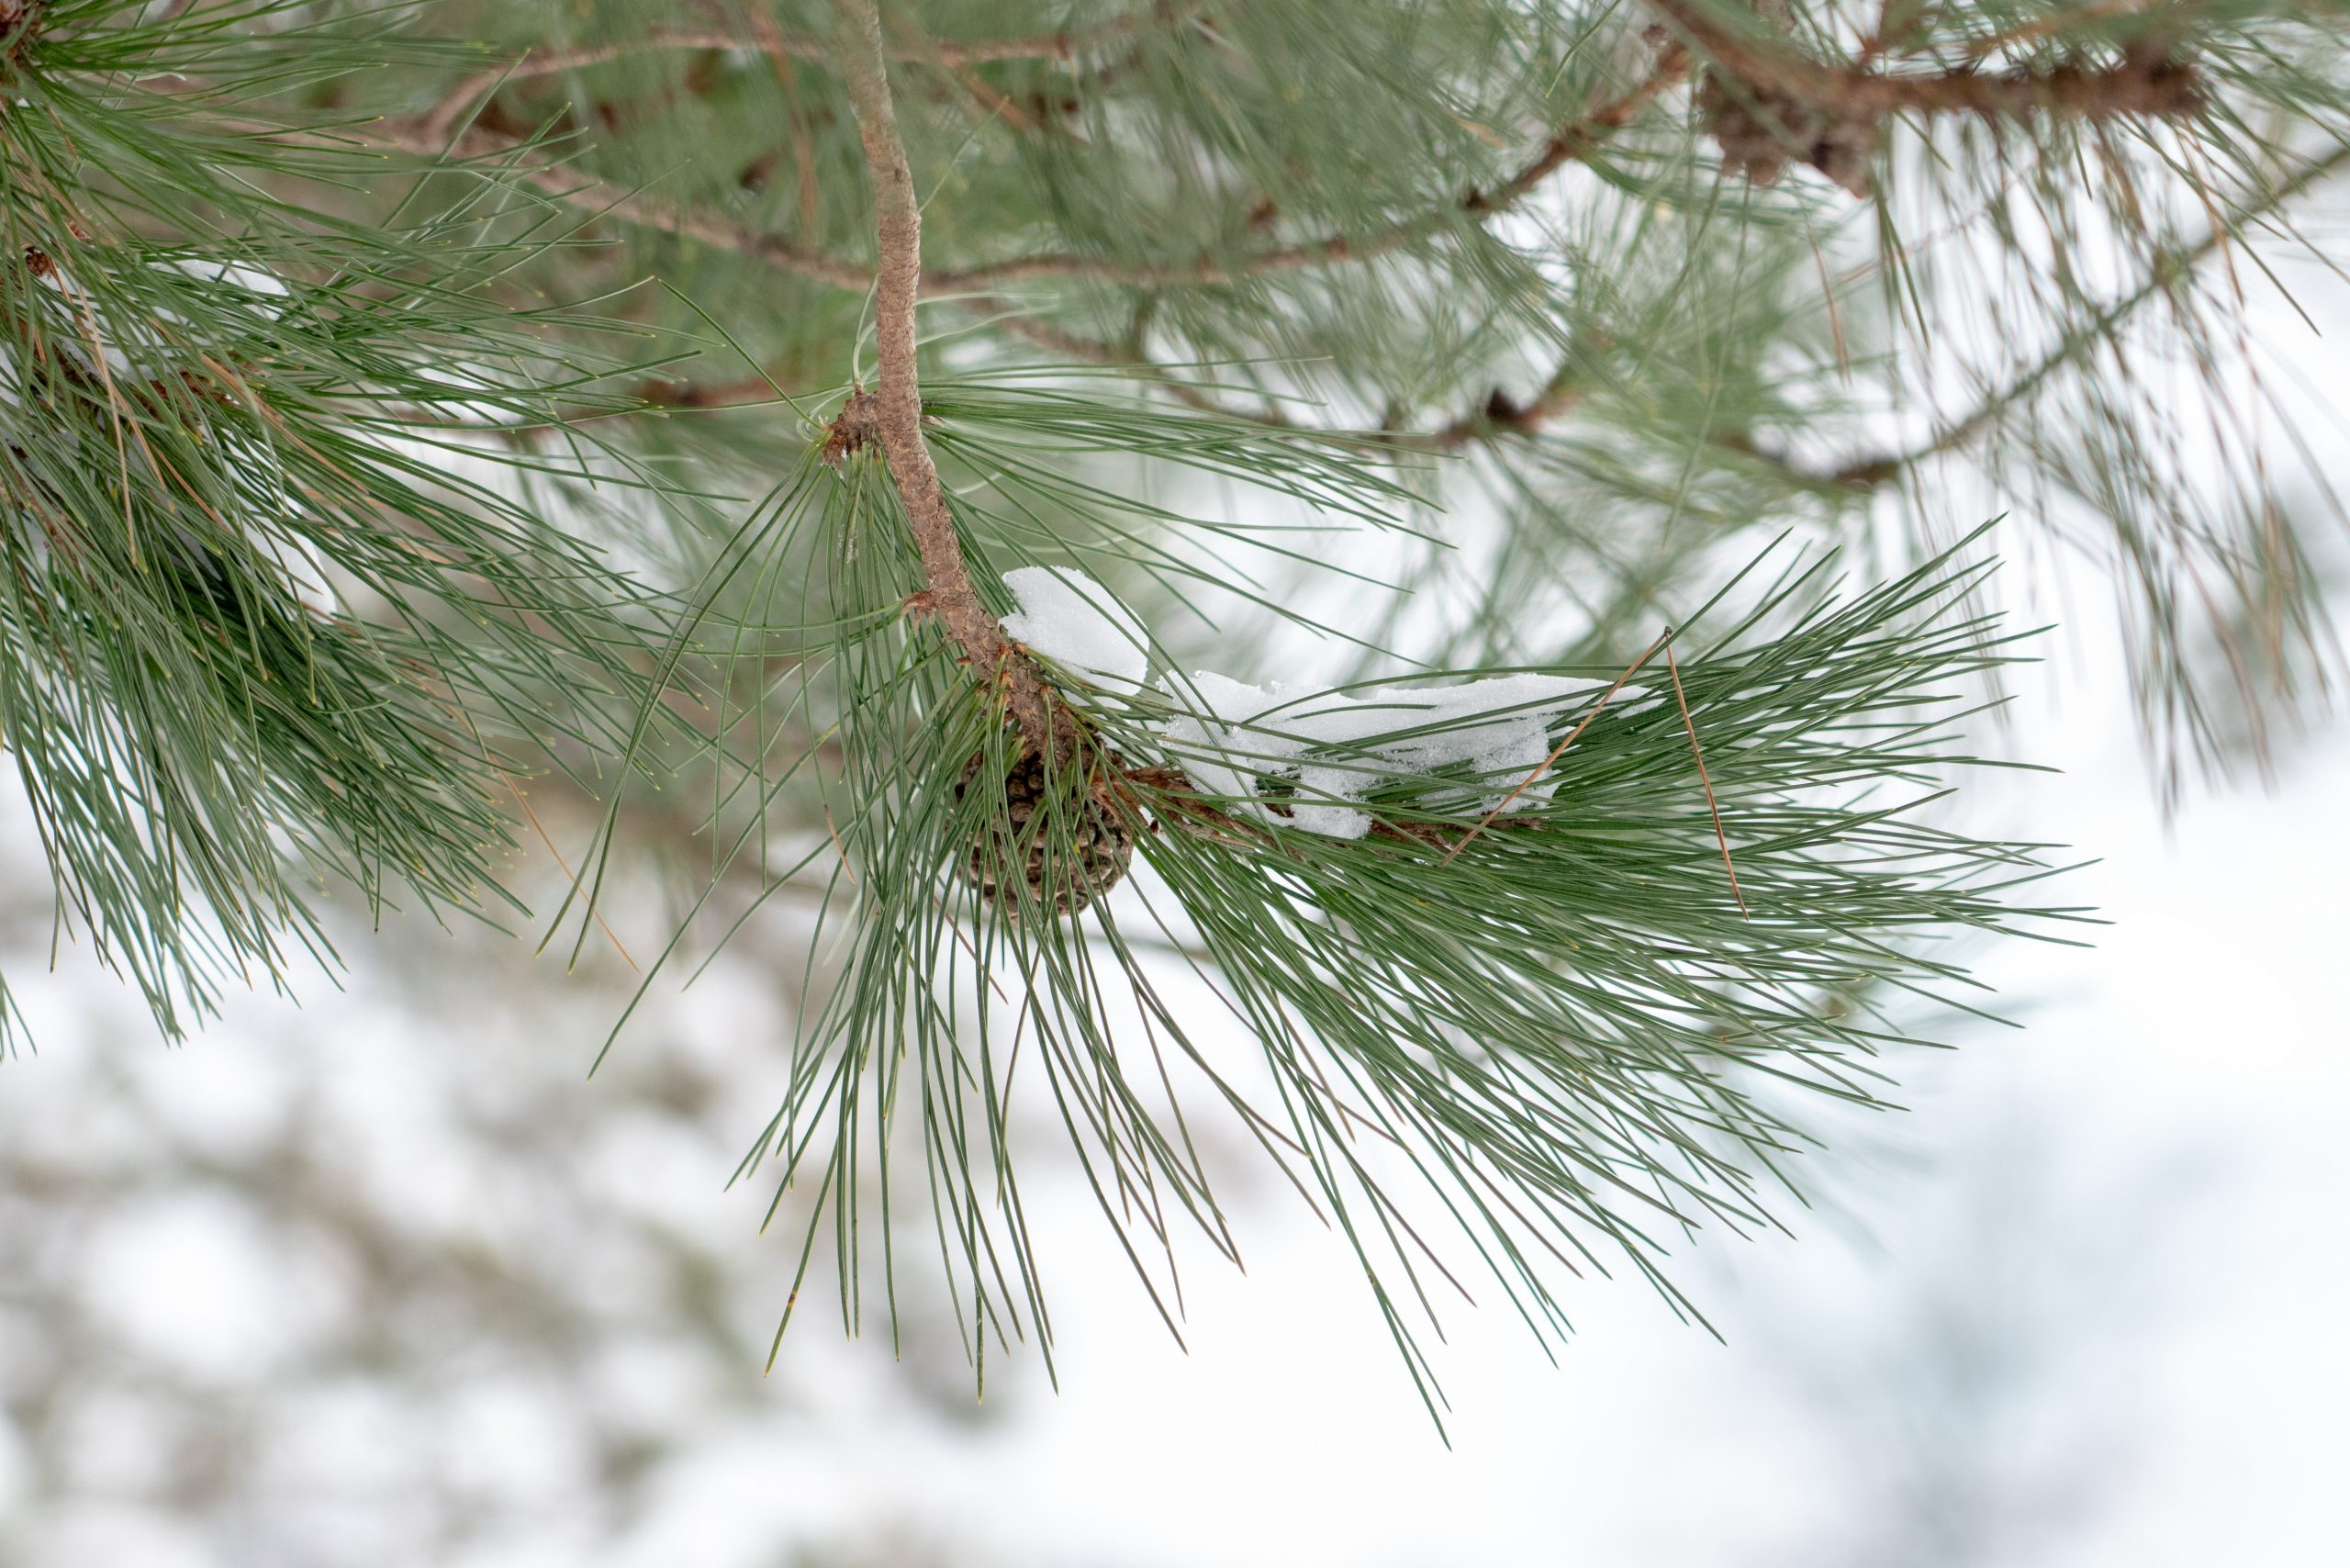 Pine needles covered in snow.